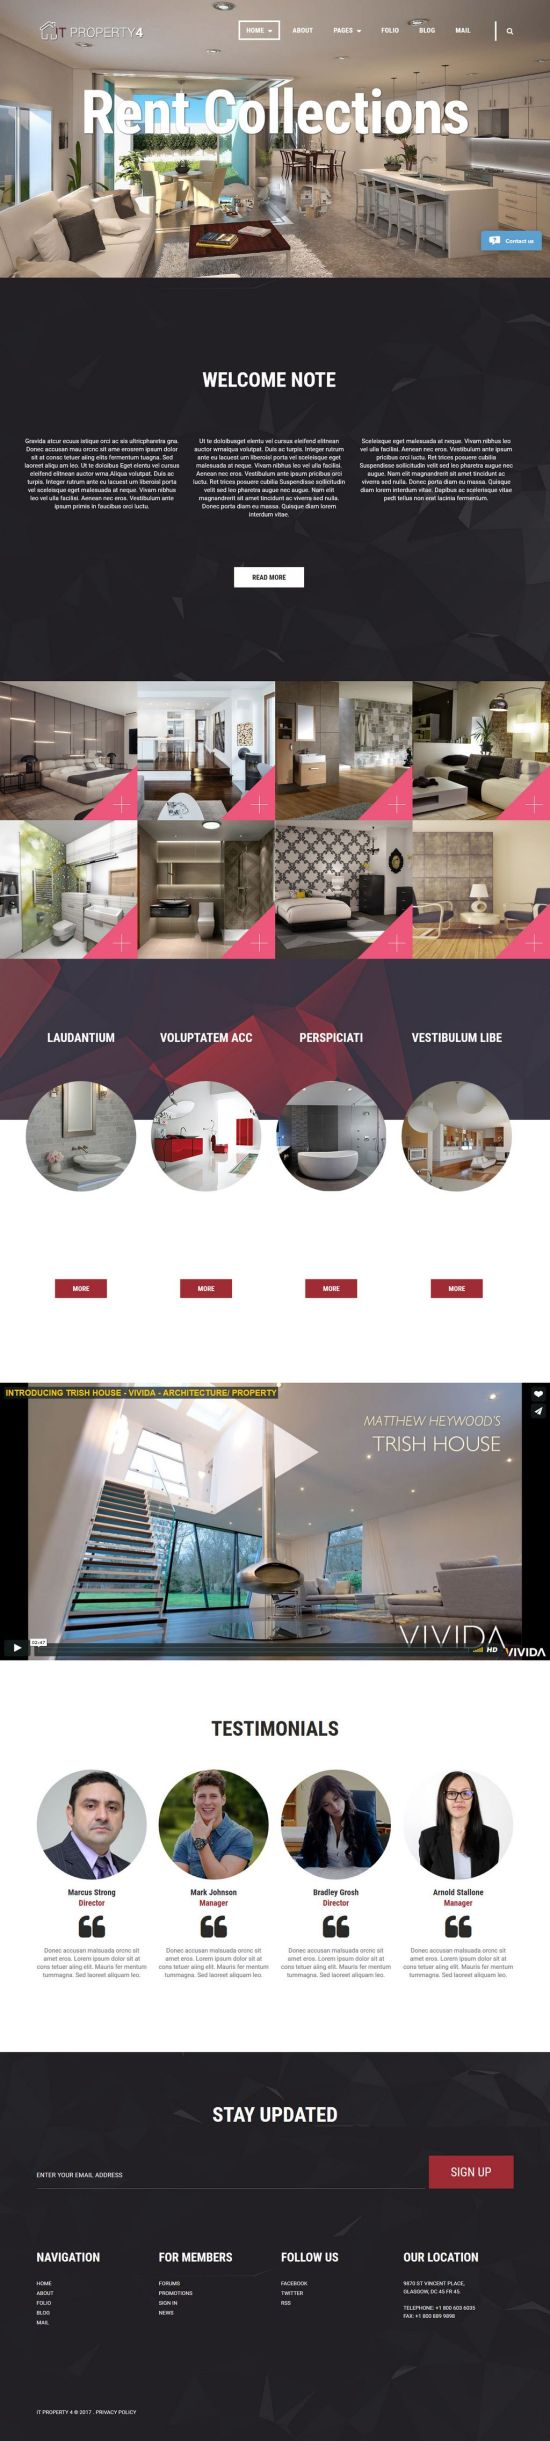 it property icetheme joomla template 01 - IT Property 4 Joomla Template